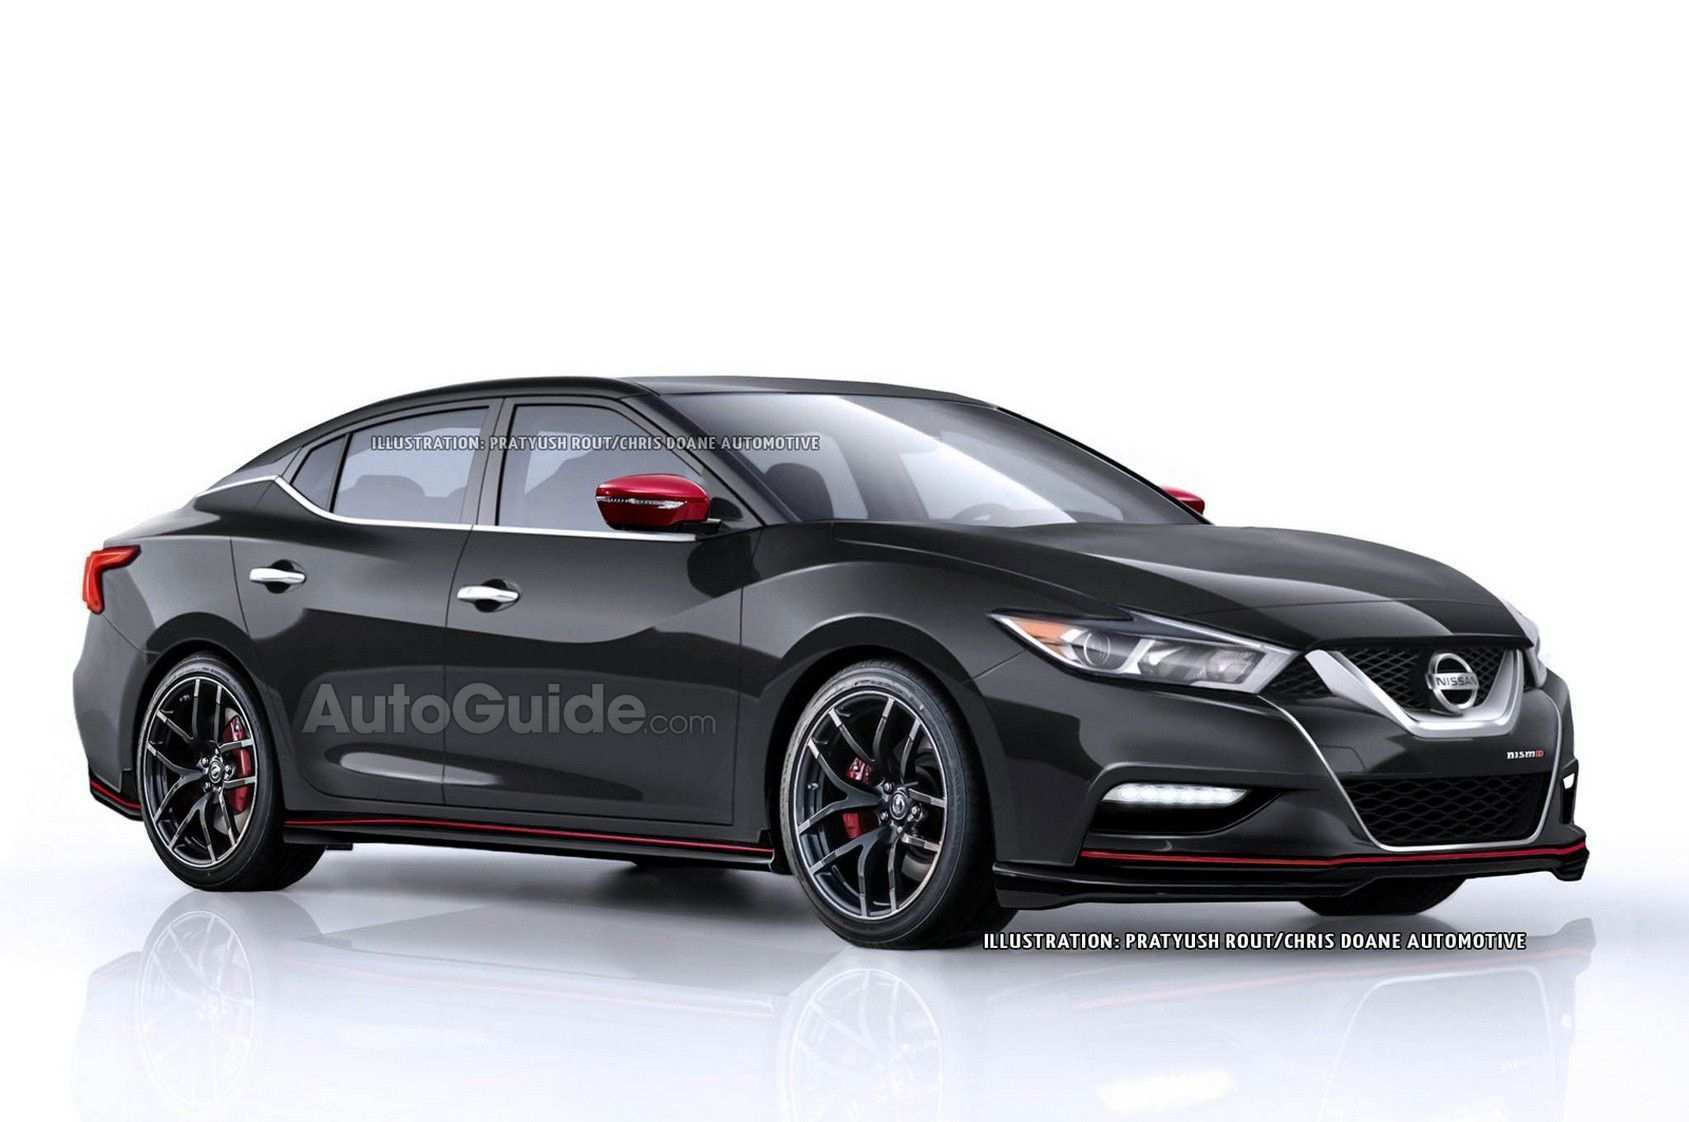 73 Gallery of 2020 Nissan Maxima Detailed Exterior and Interior for 2020 Nissan Maxima Detailed